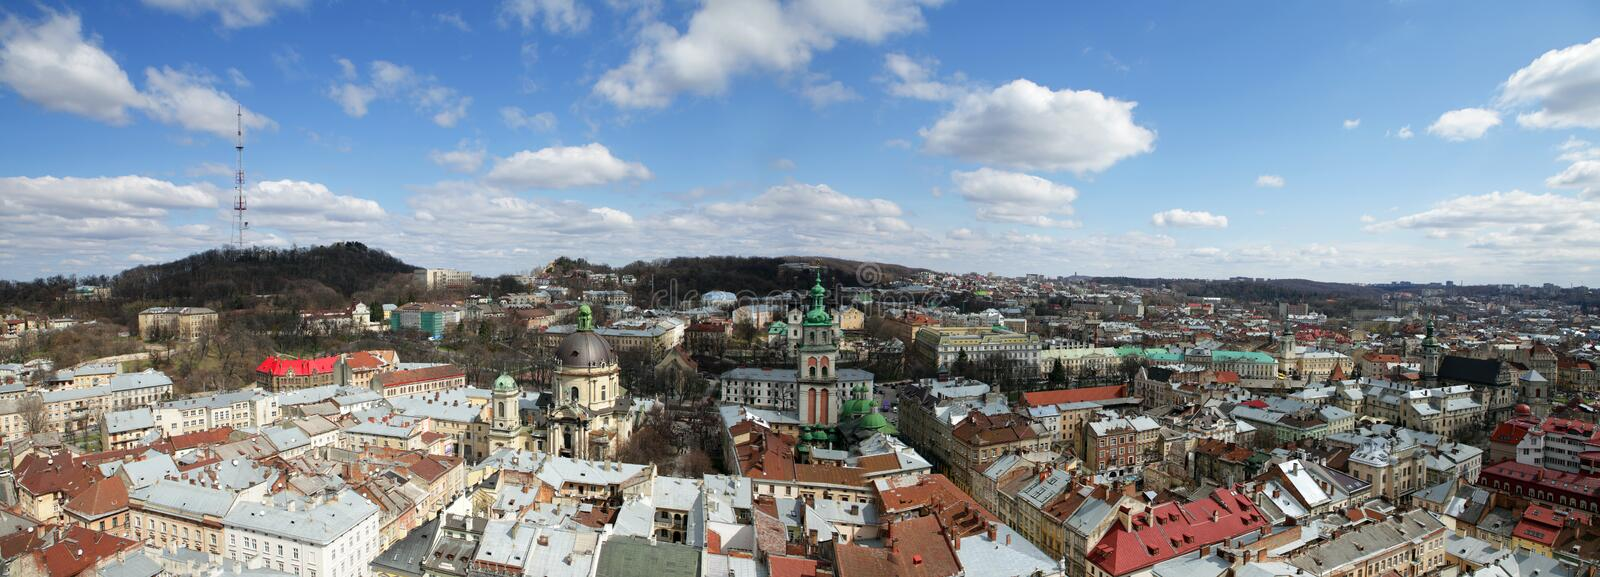 Download Panoramic View Of Lviv, Ukraine Royalty Free Stock Image - Image: 24314916